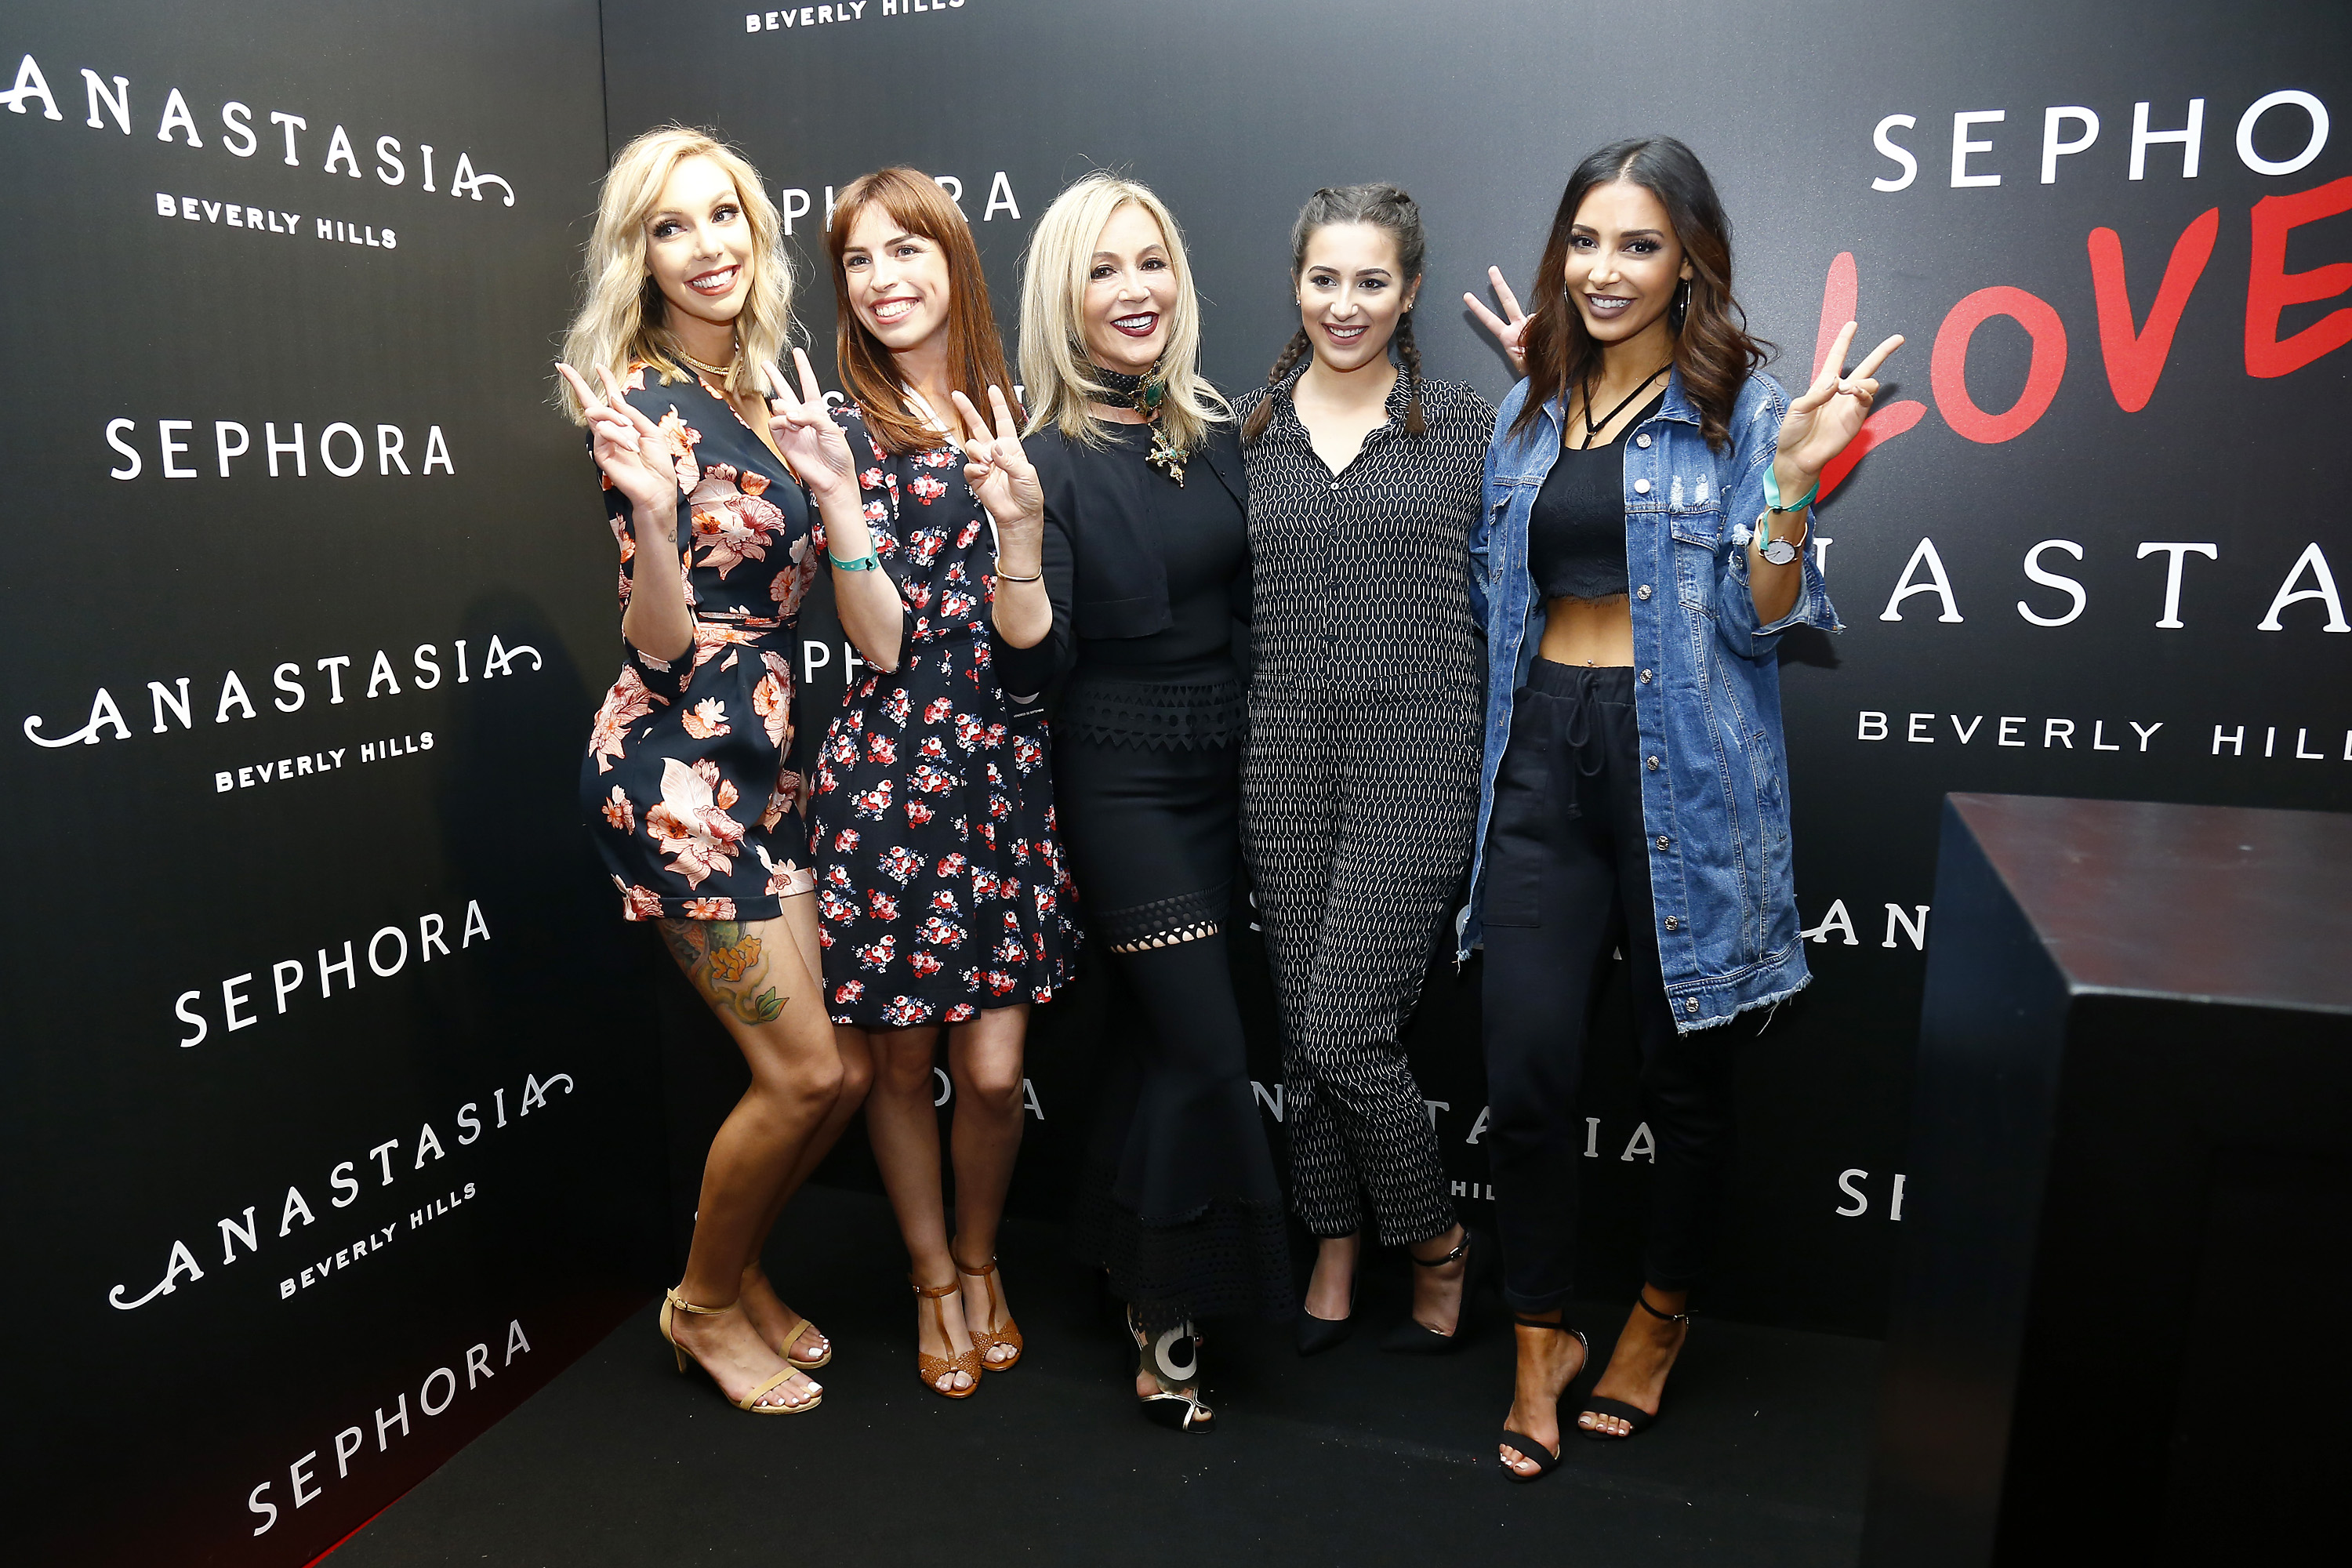 Anastasia Beverly Hills Launches Beauty Line Exclusively at Sephora